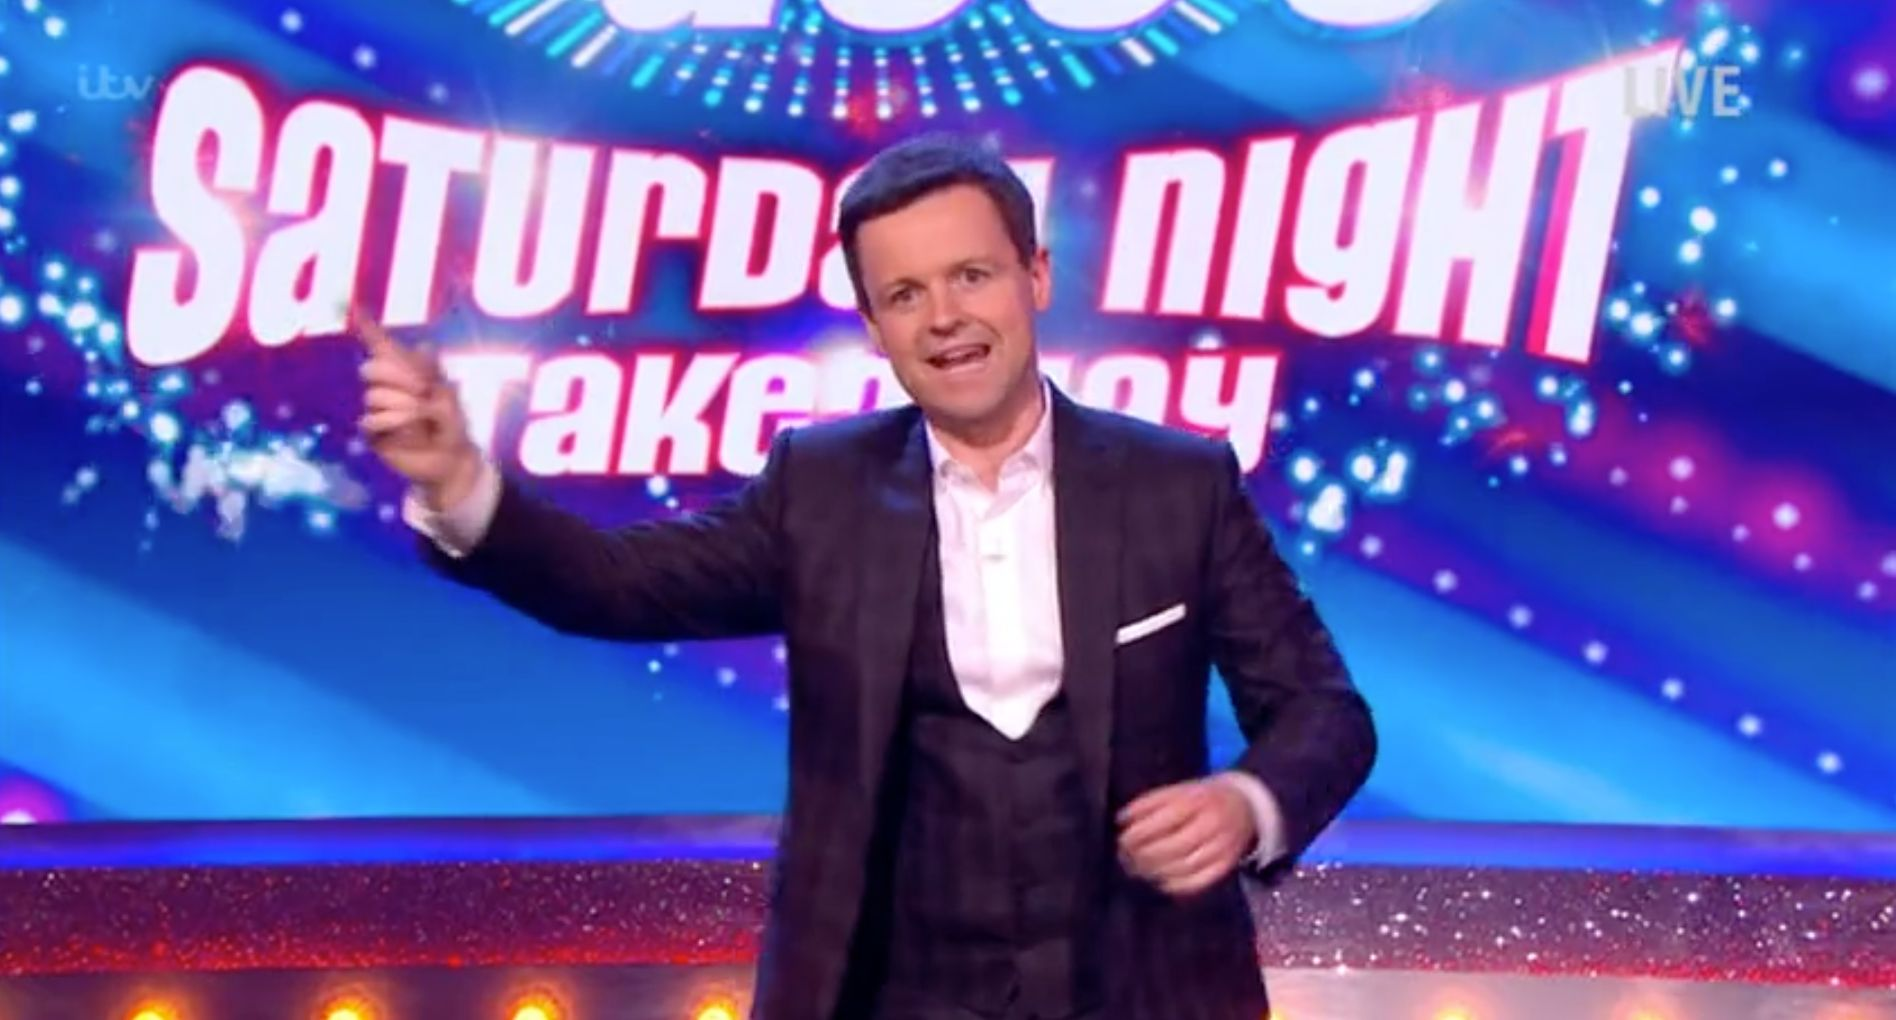 Declan Donnelly hosted 'Saturday Night Takeaway' by himself last